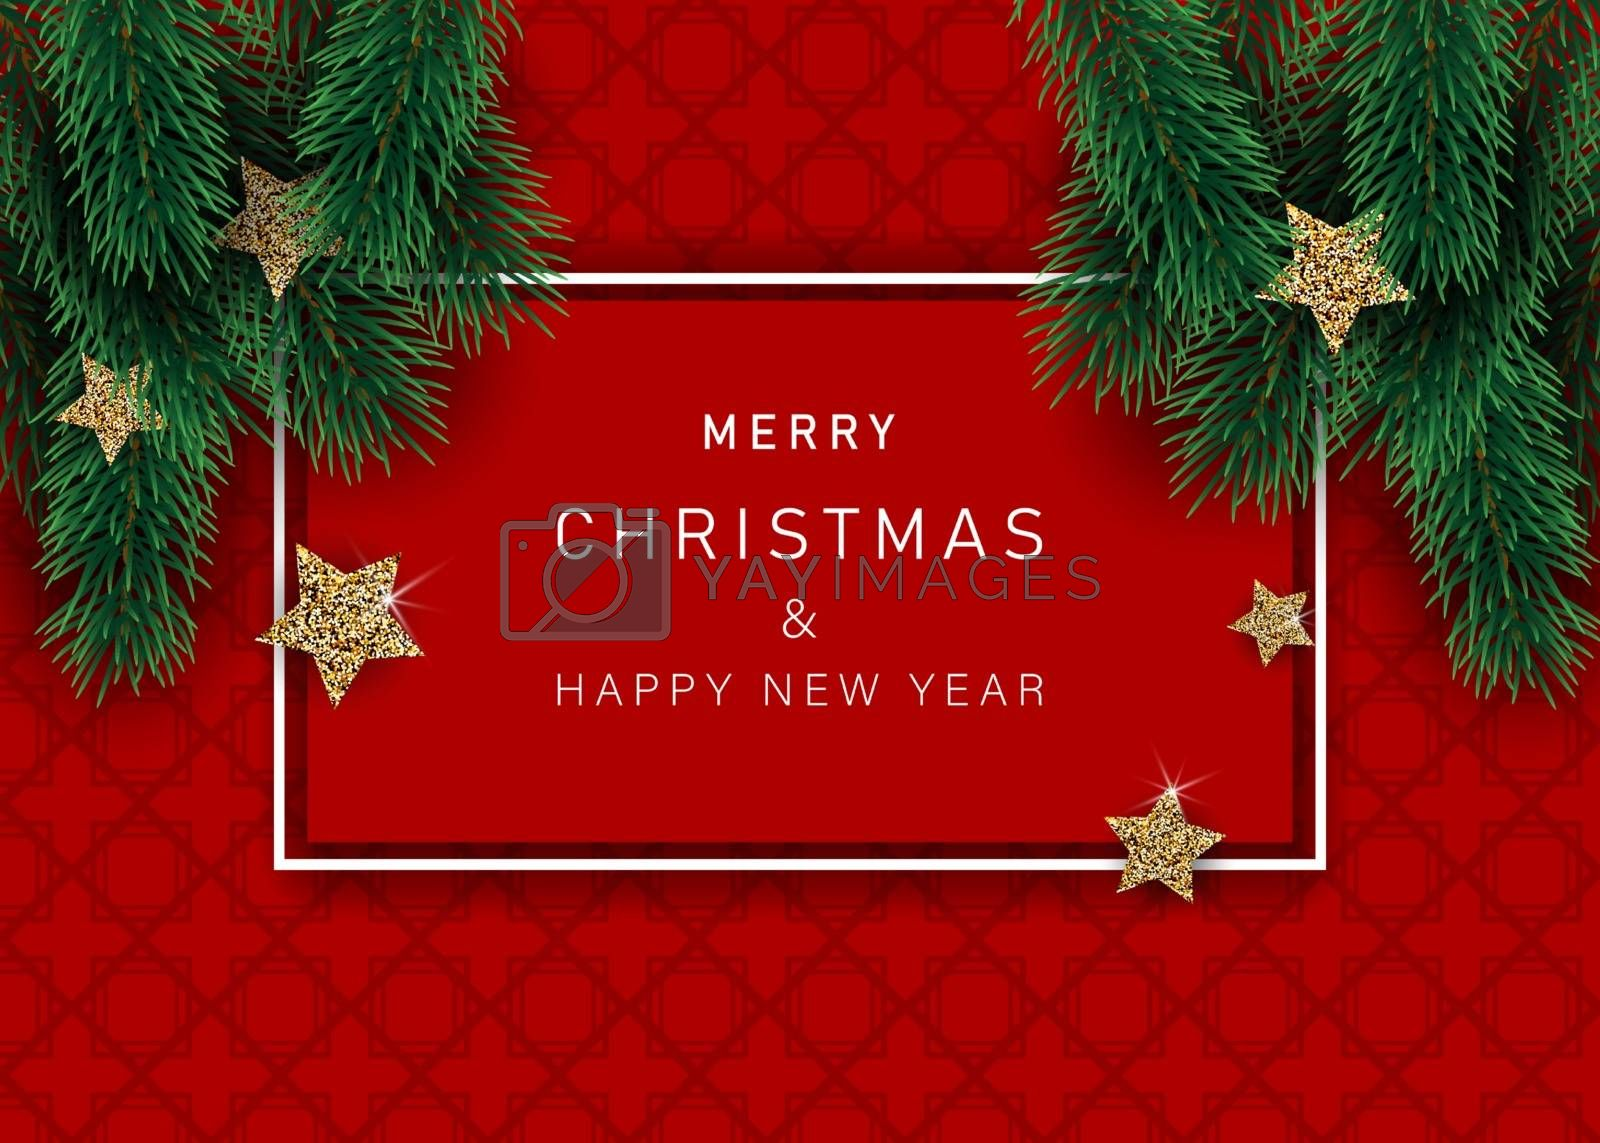 Christmas banners with decorated stars with branches. With snow frames on a red background. Festive header design for your website.